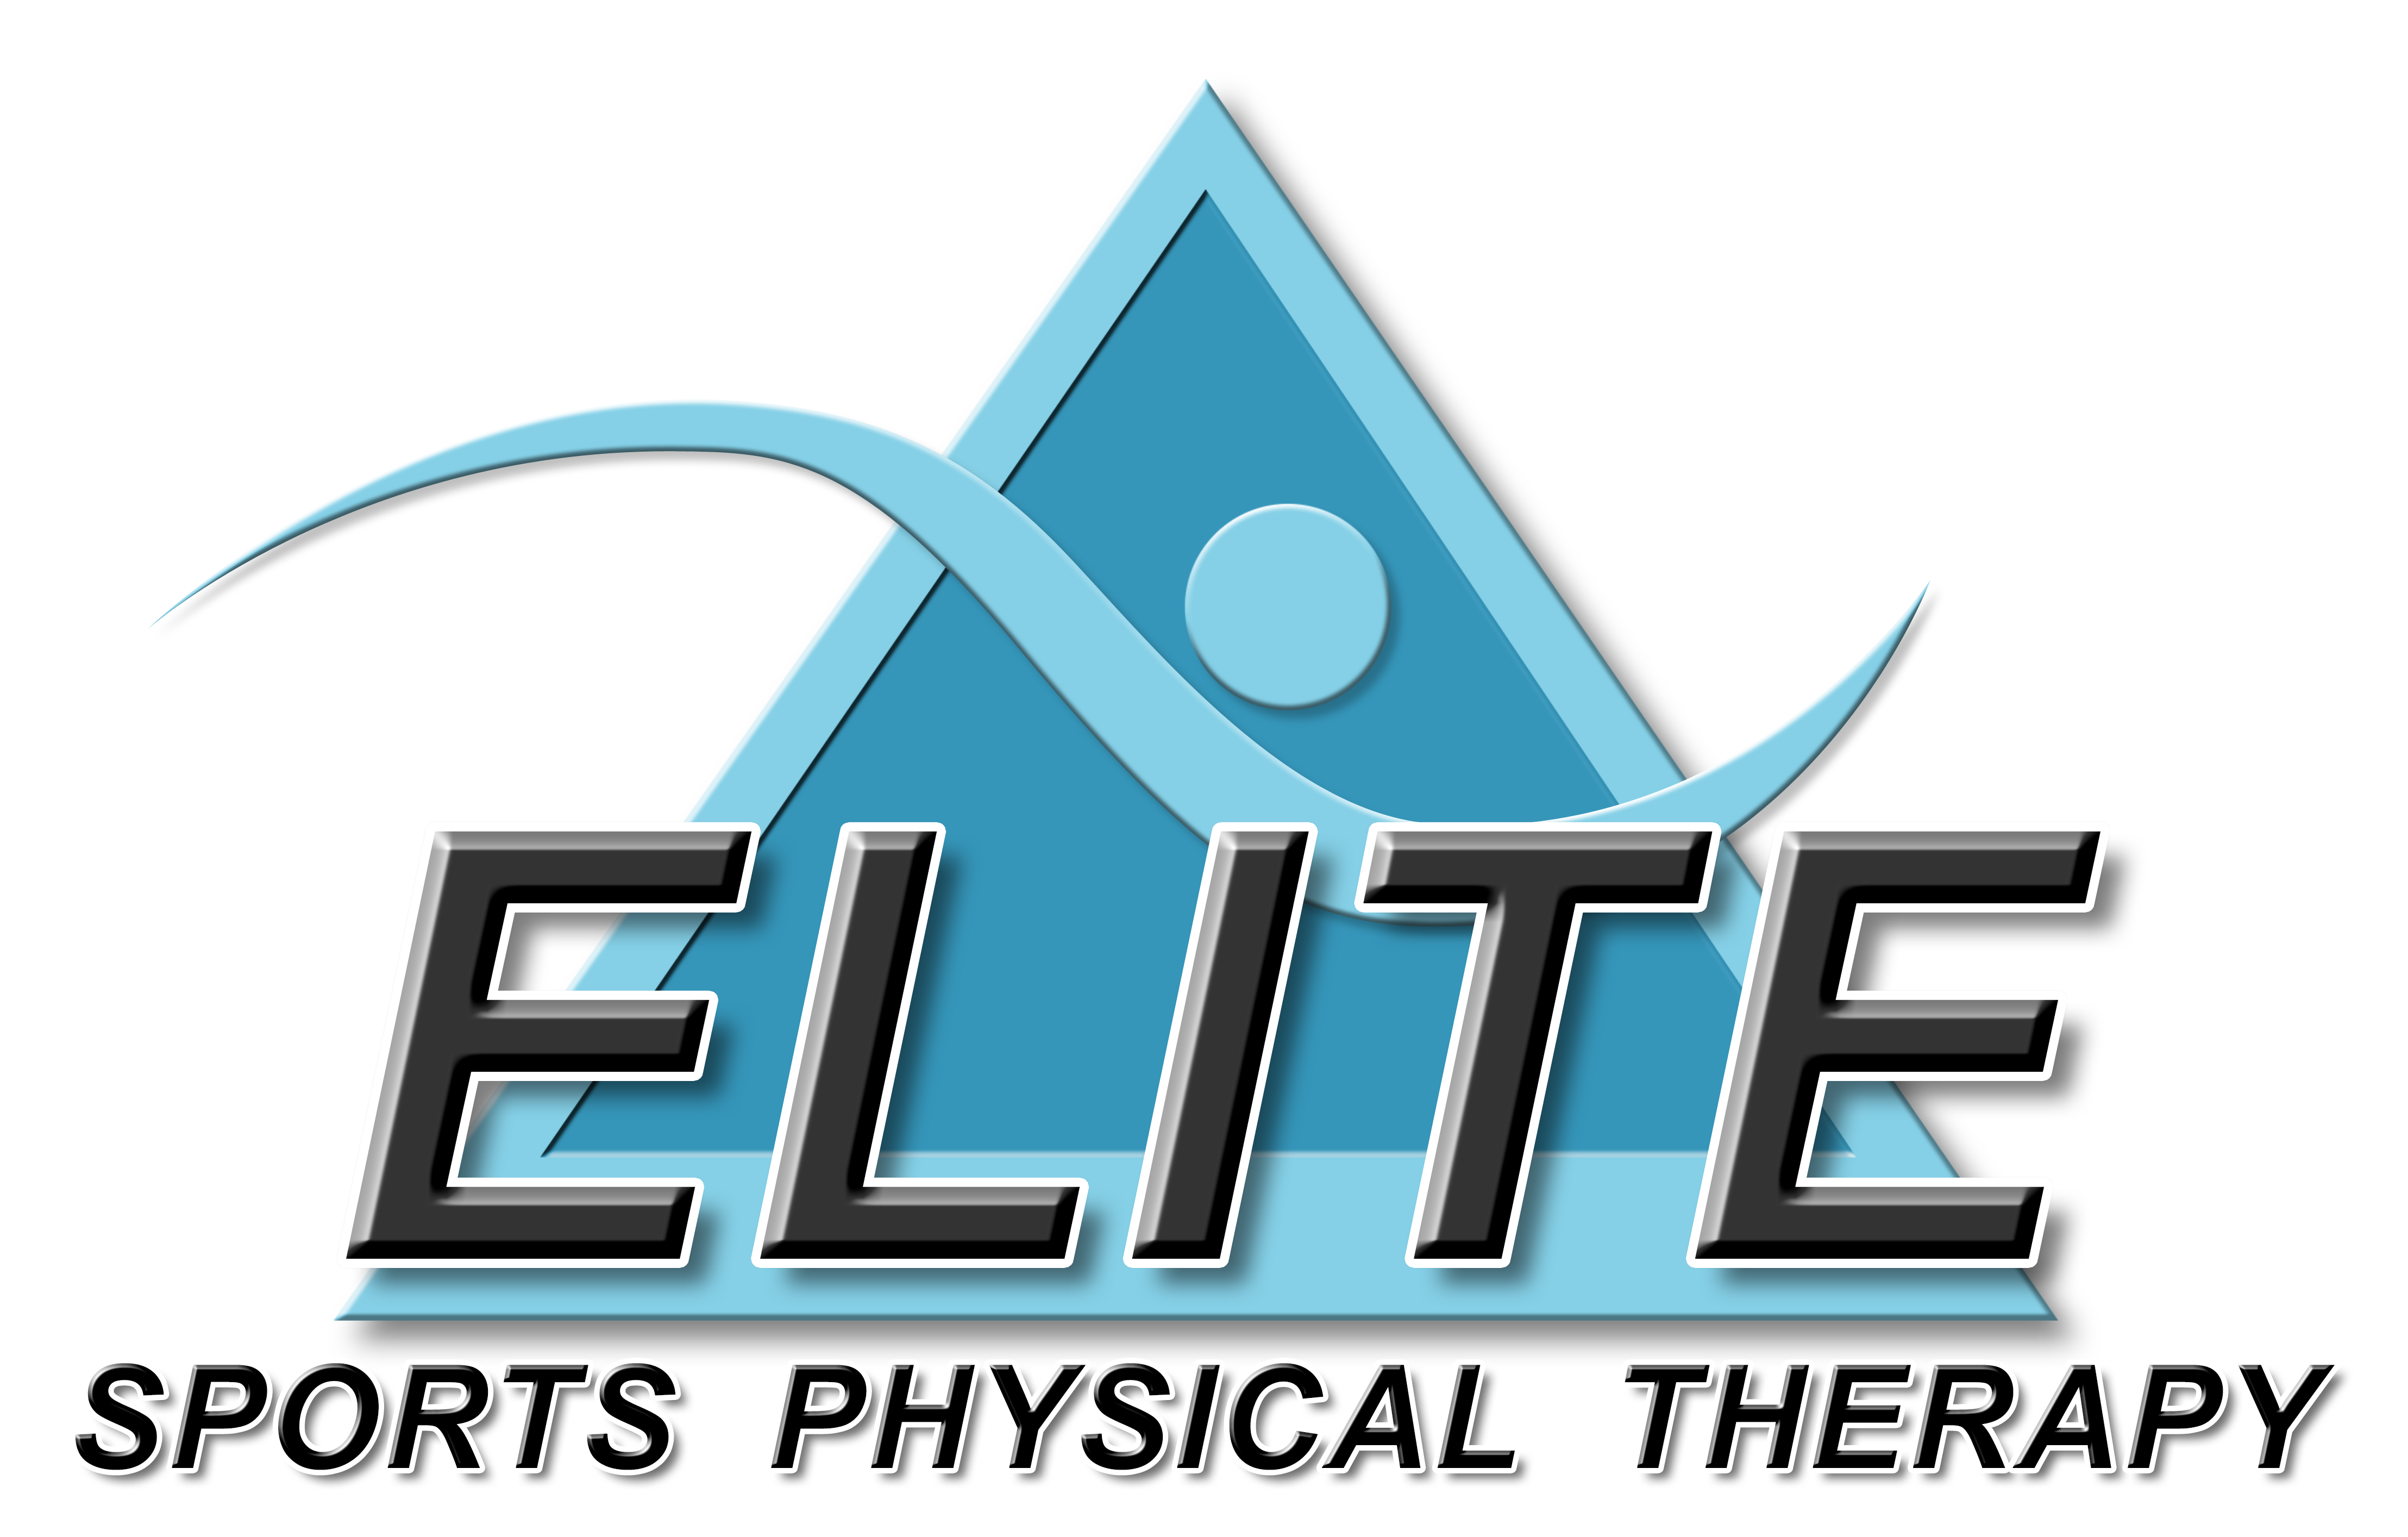 How to Use Physical Therapy to Recover From Sports Injuries How to Use Physical Therapy to Recover From Sports Injuries new foto